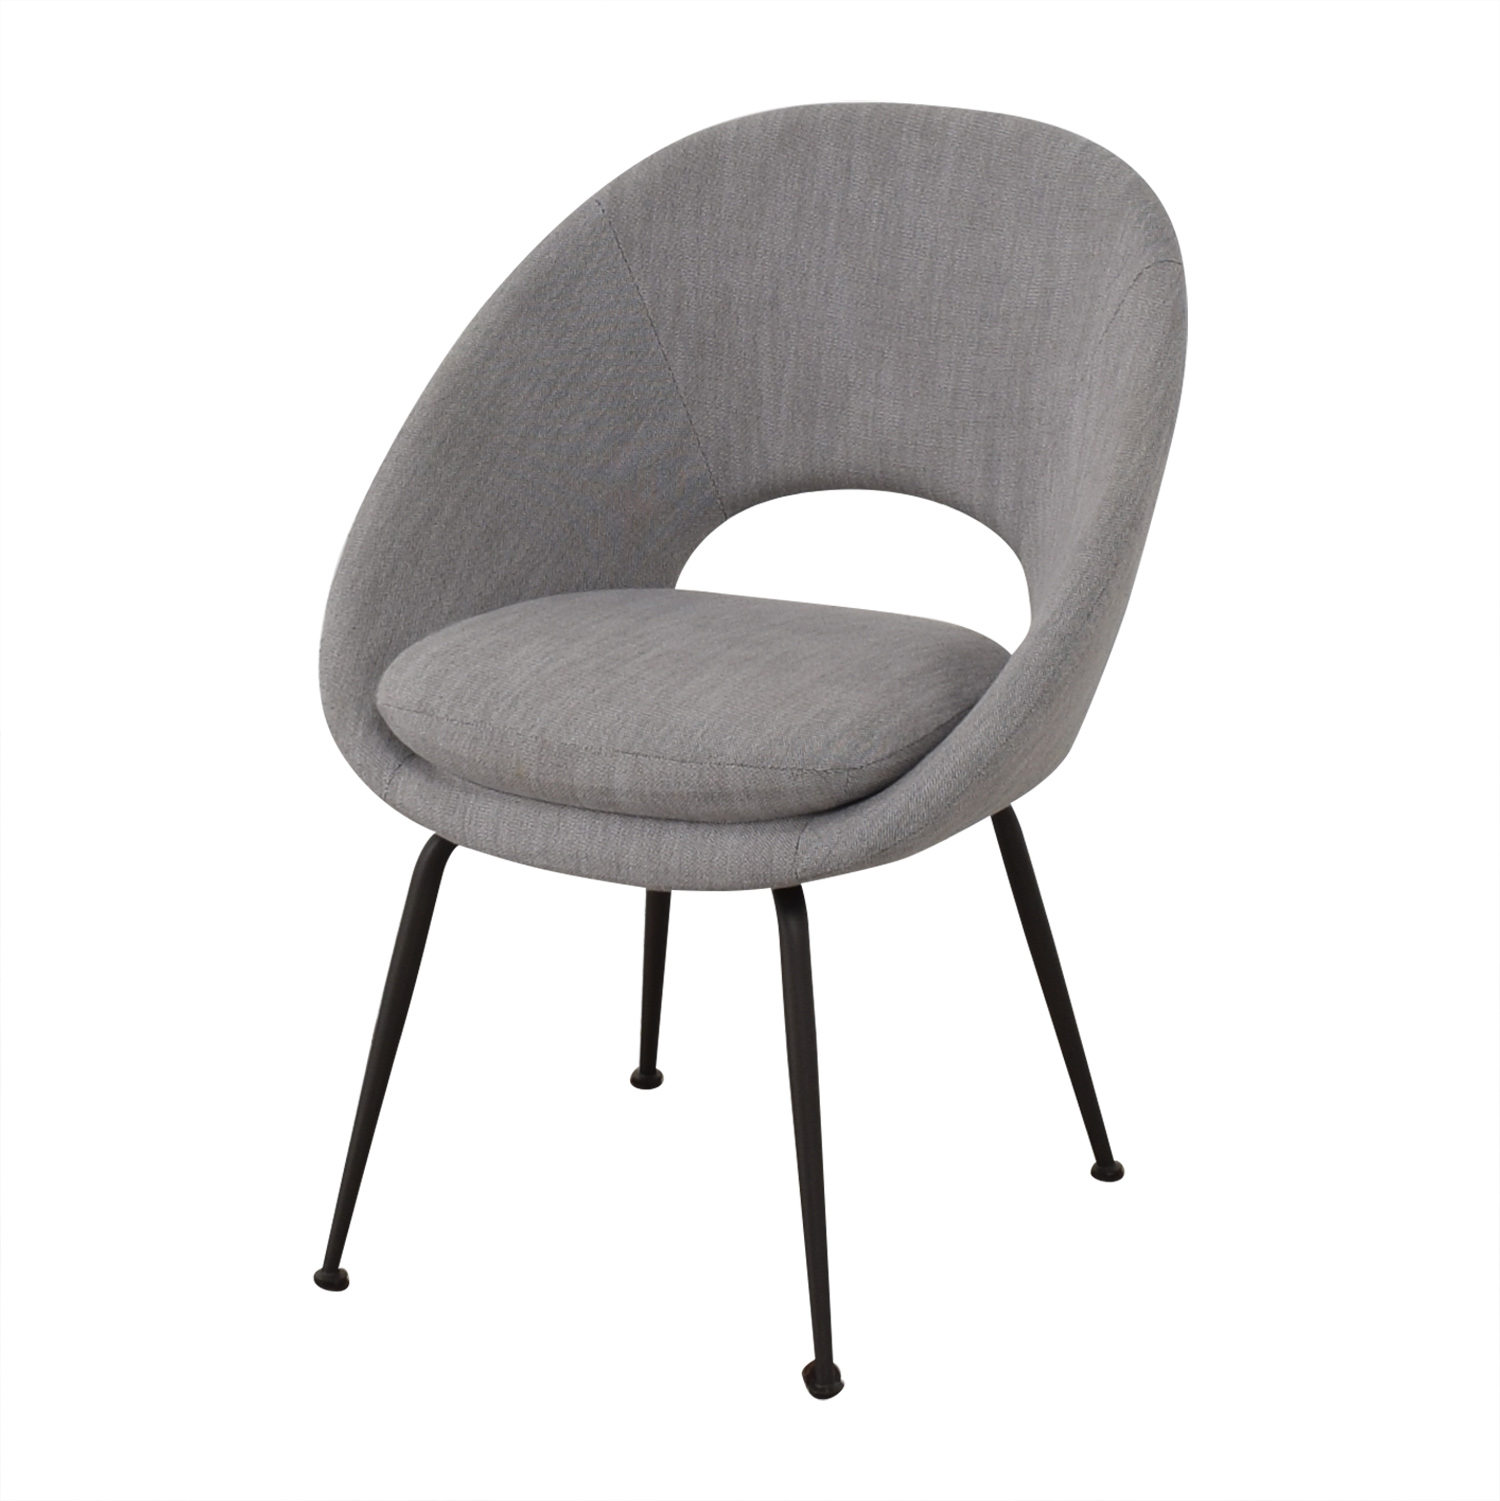 West Elm Orb Upholstered Dining Chairs / Dining Chairs